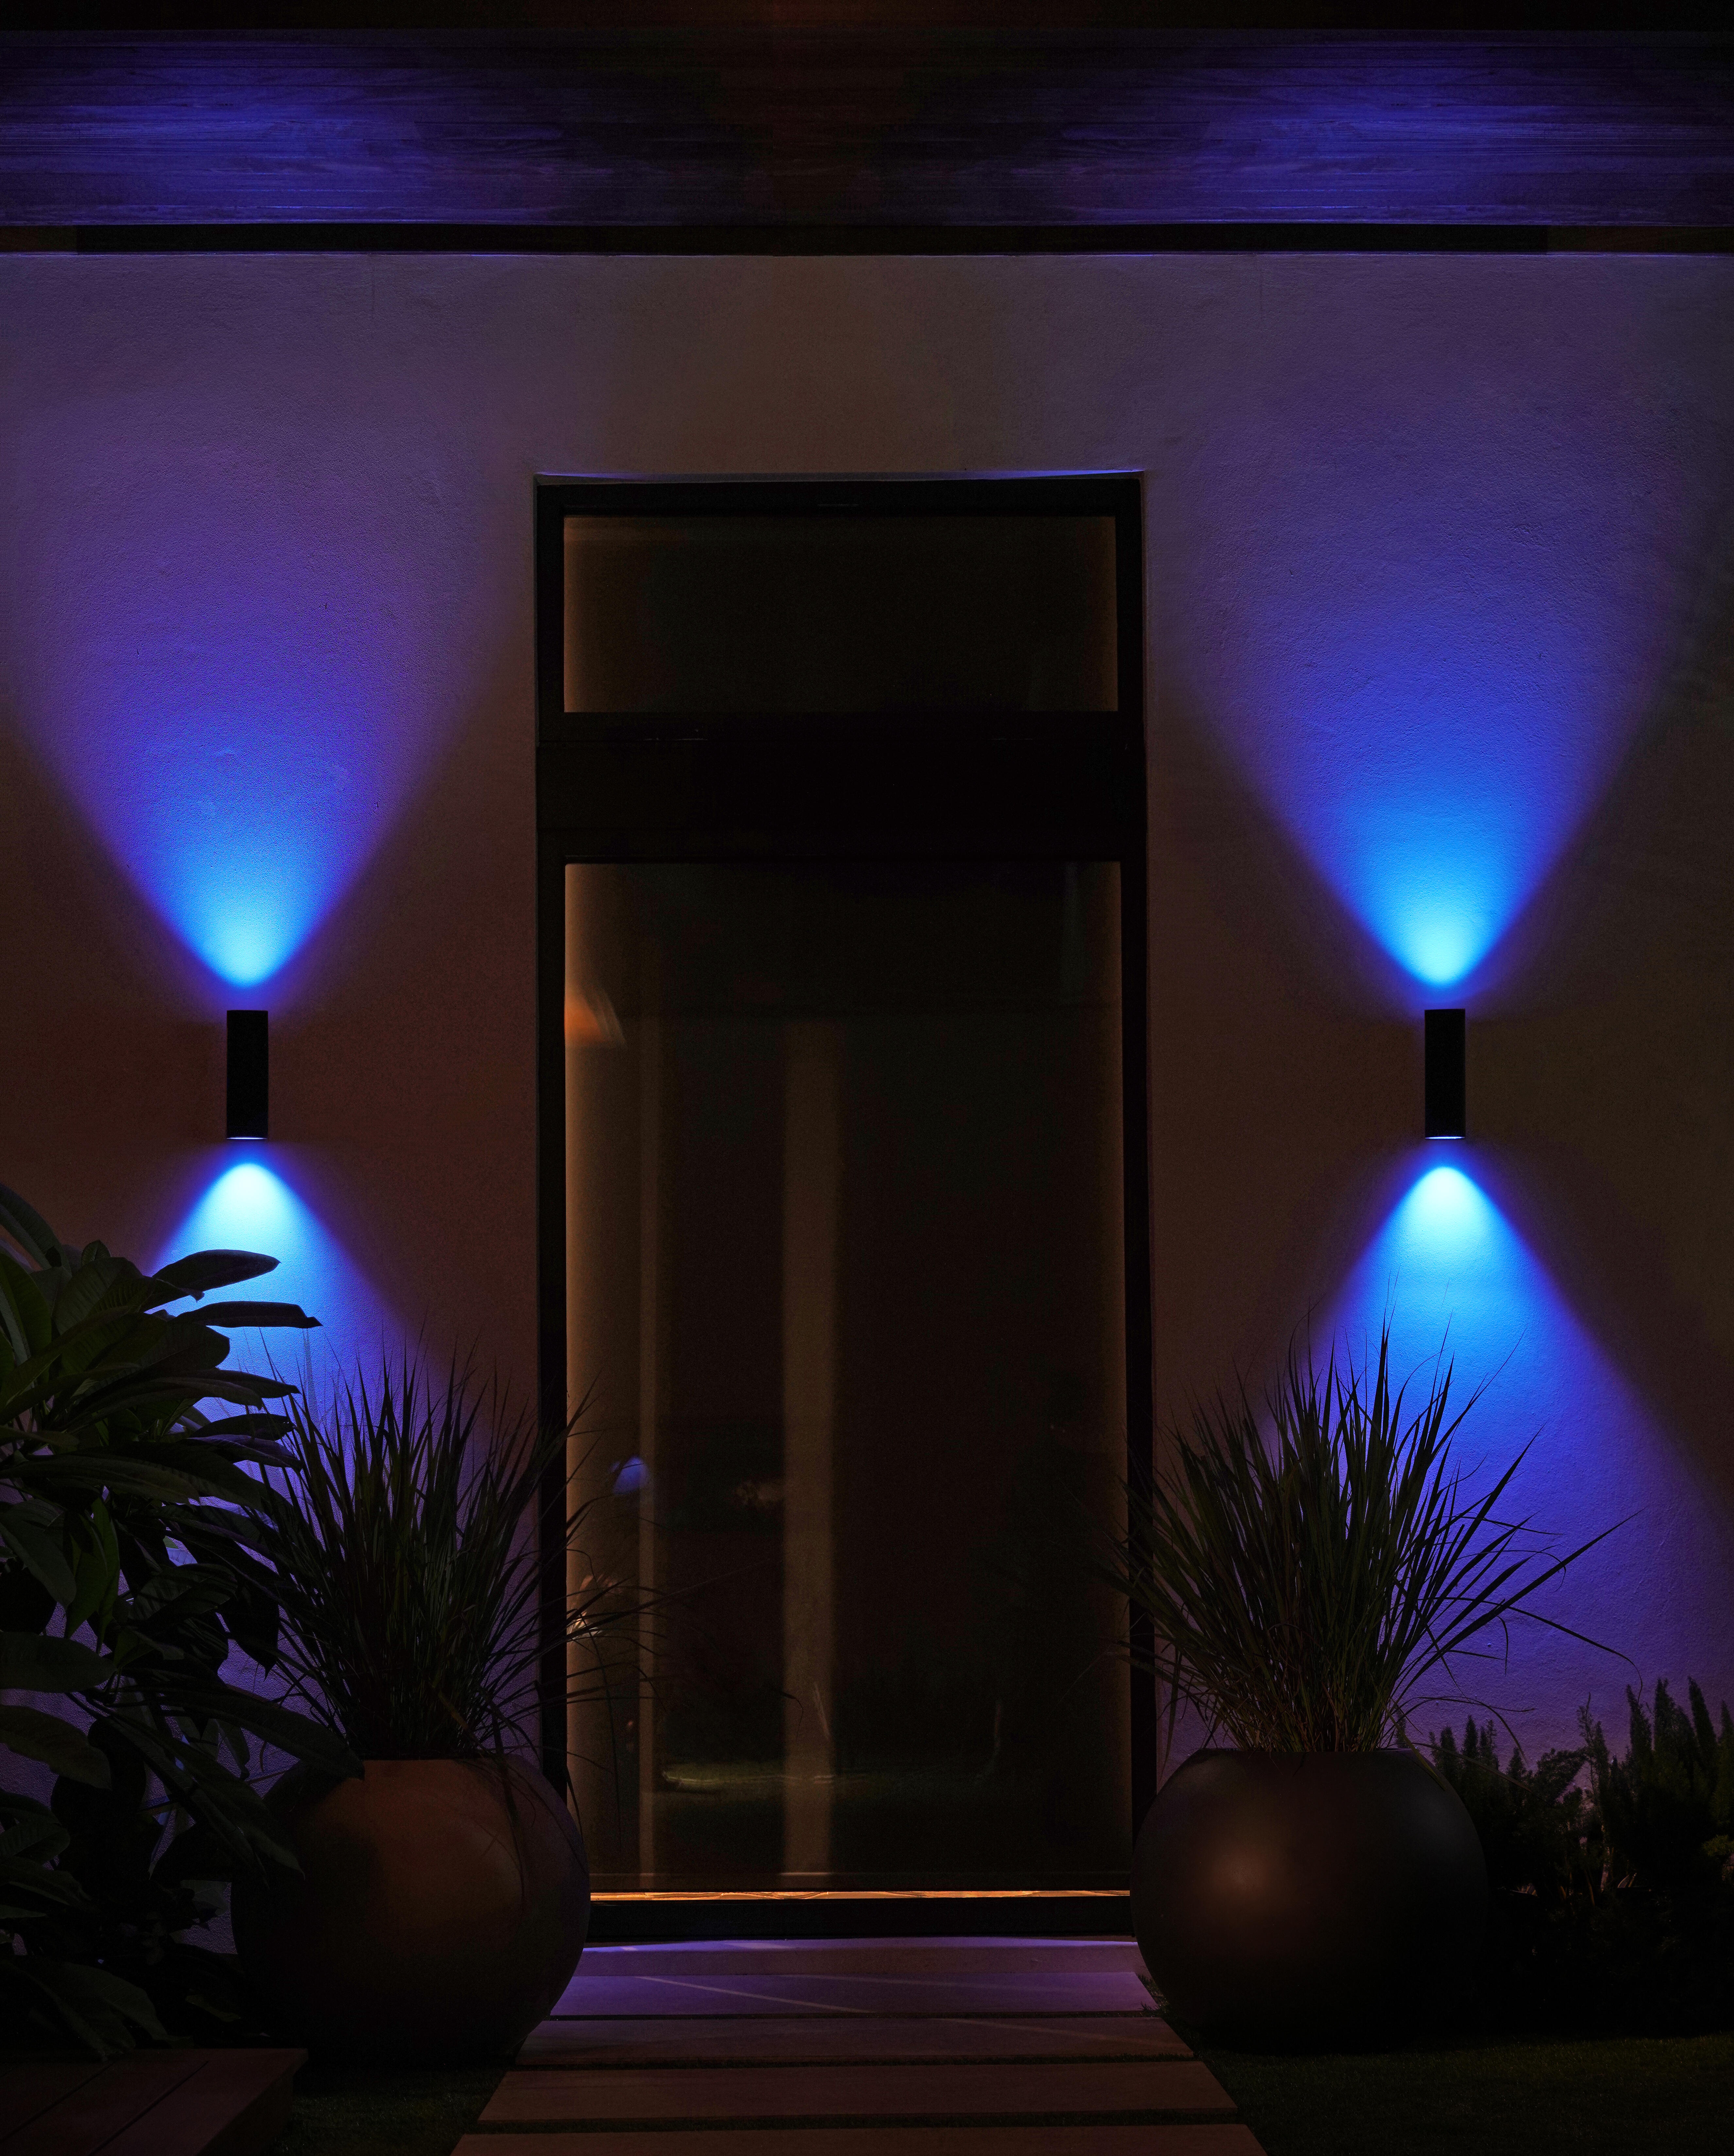 philips-hue-appear-product-in-use